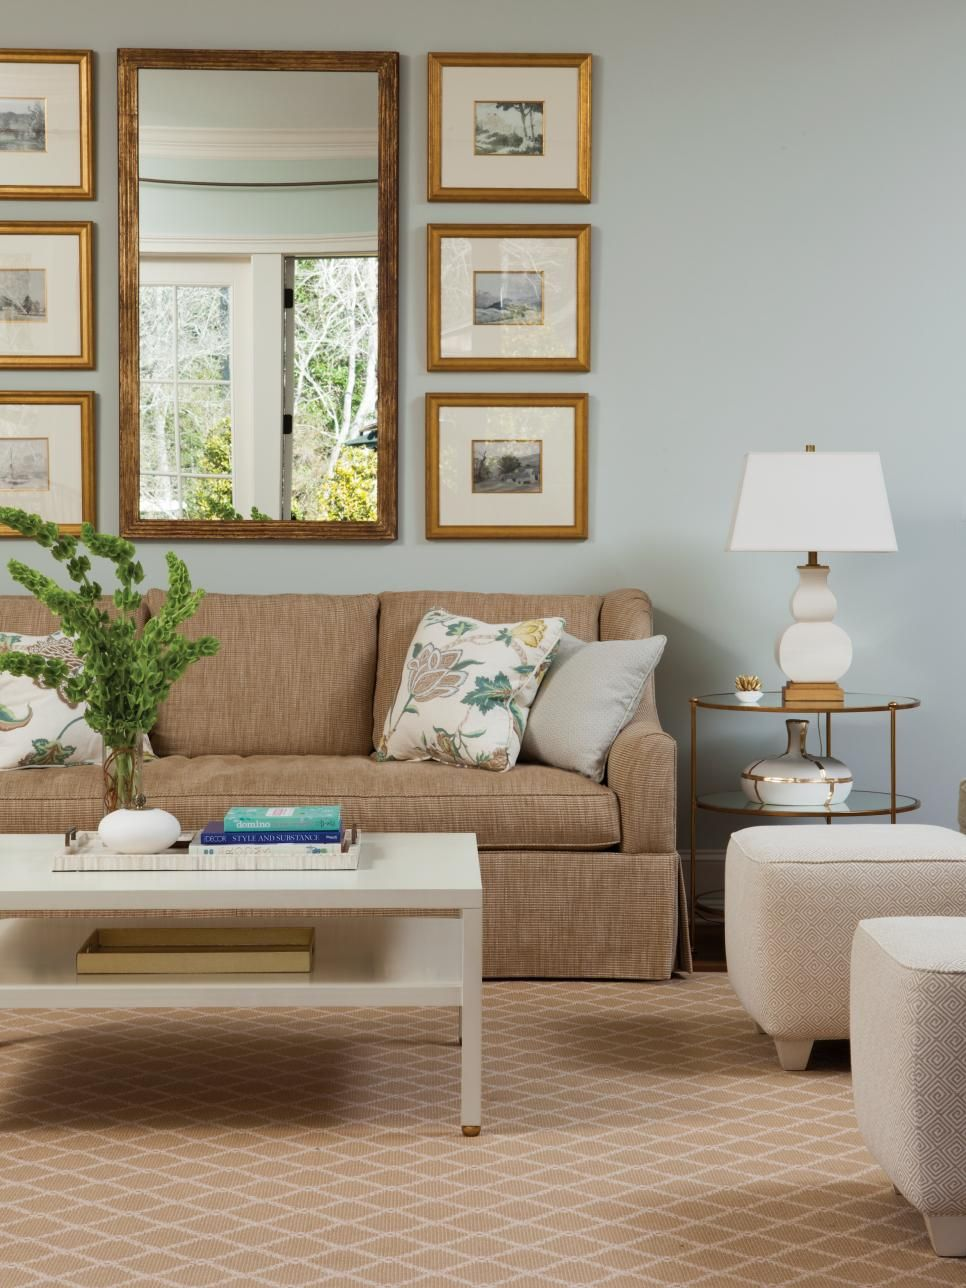 Light Blue Walls Are Paired With Neutral Furniture And Accessories